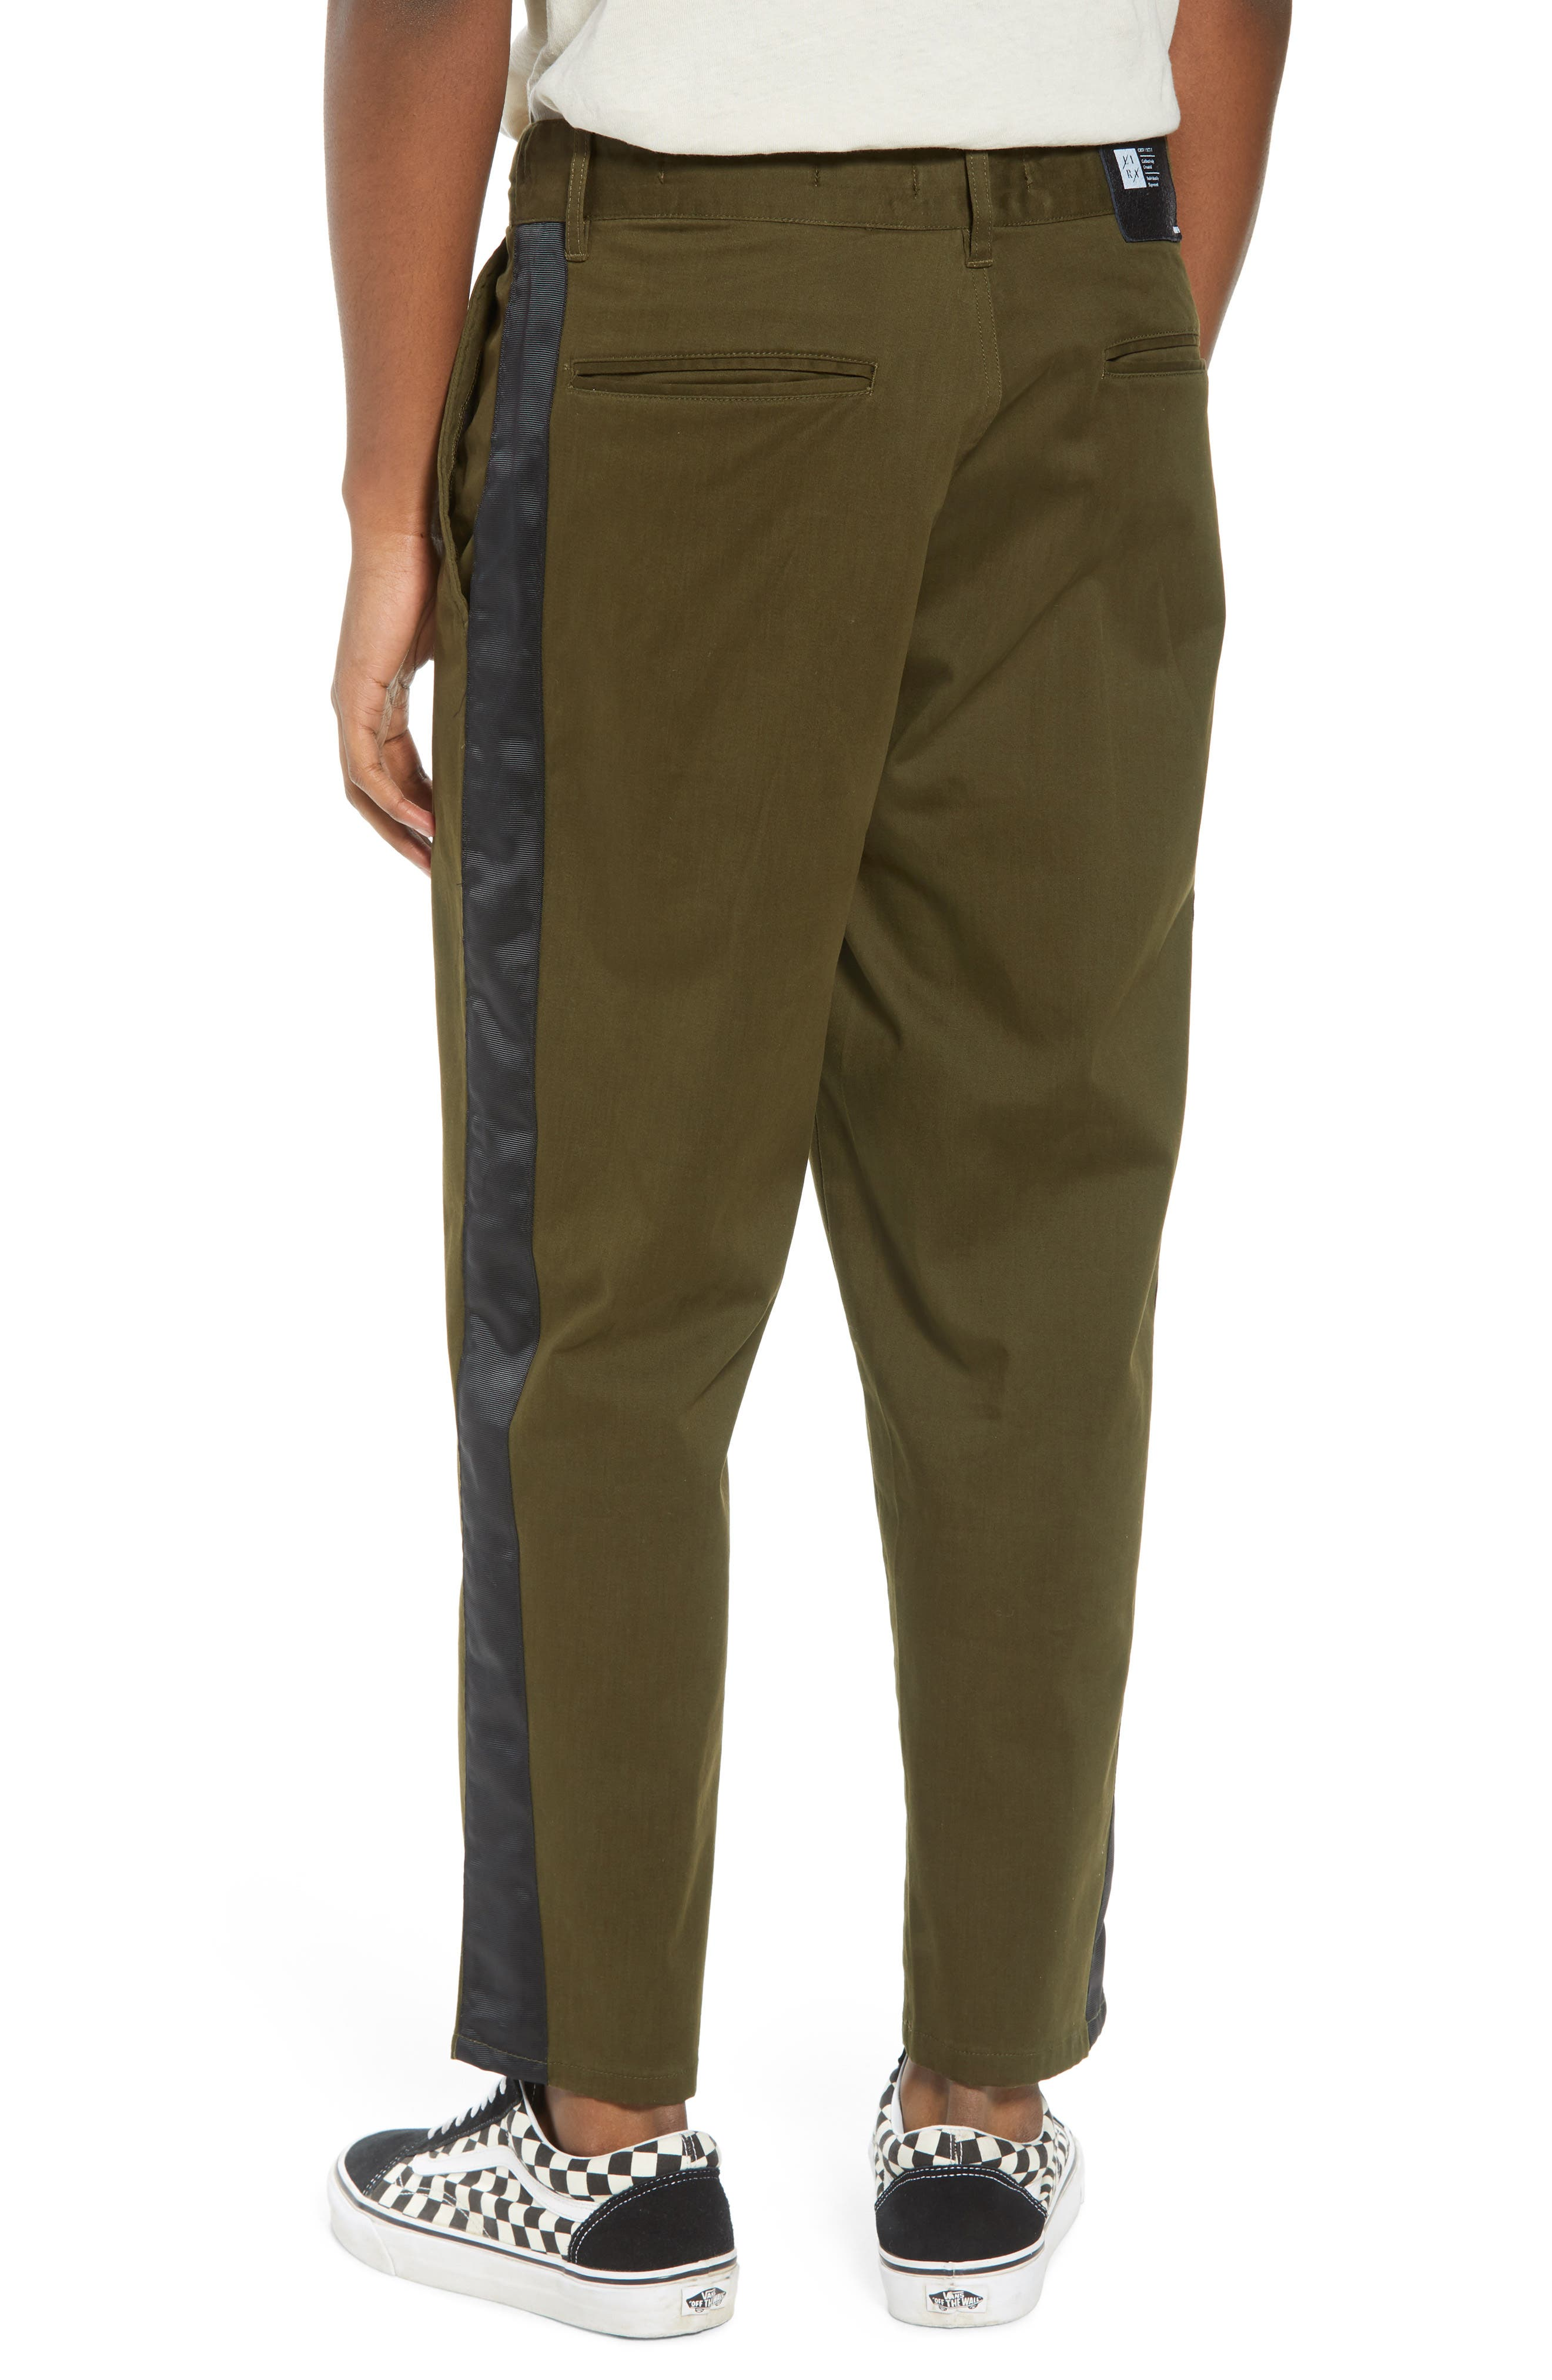 Lincoln Relaxed Fit Pants,                             Alternate thumbnail 2, color,                             Olive